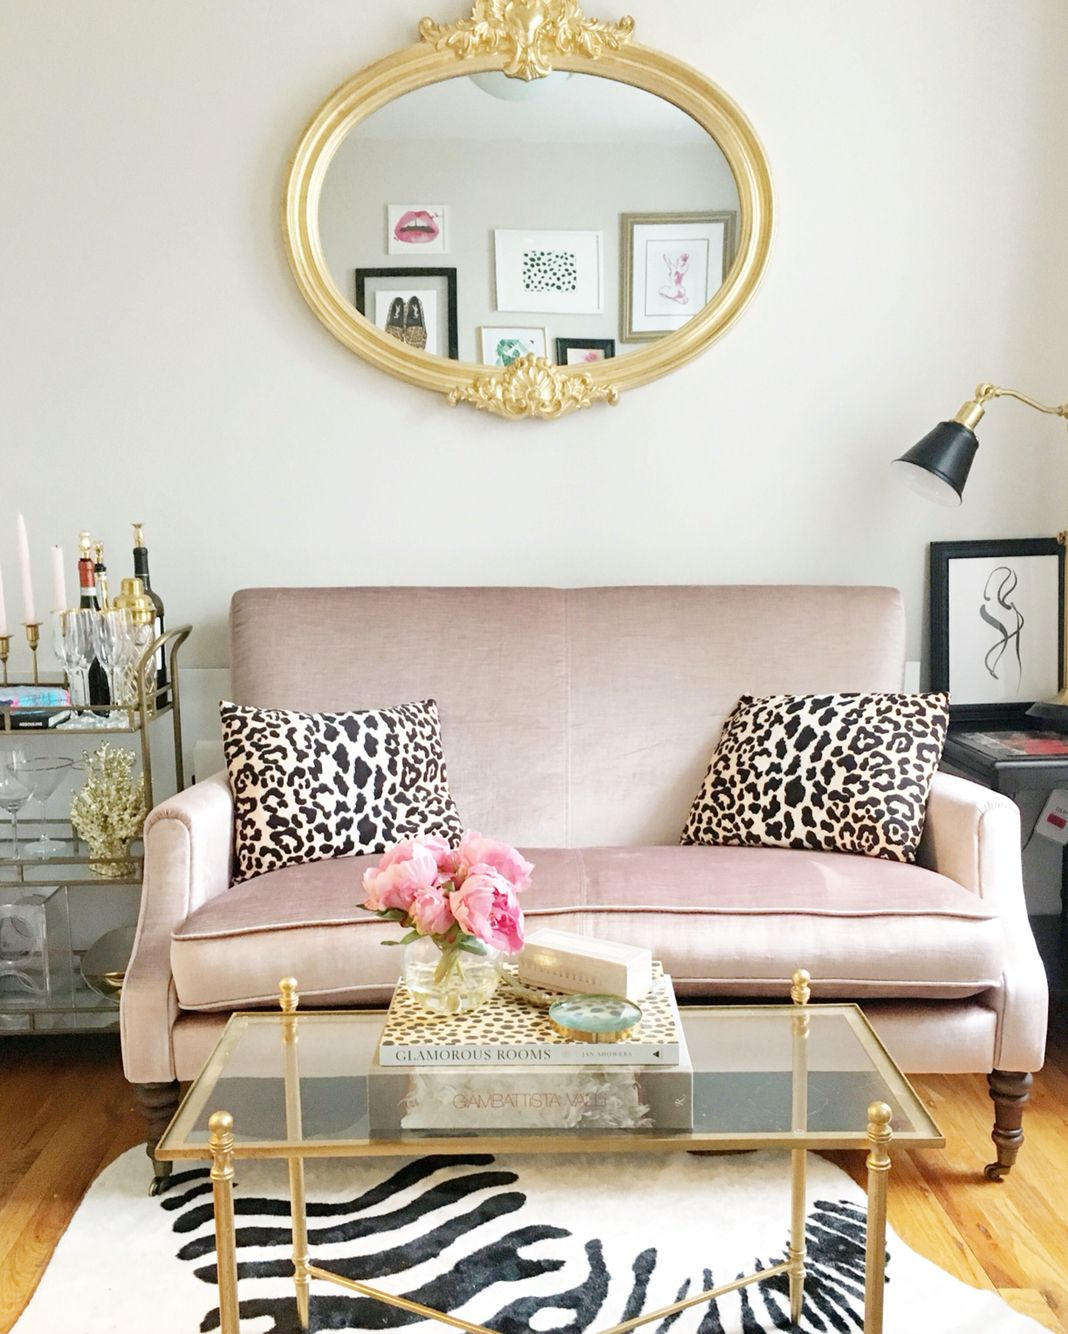 Small Nyc Apartment Living Room Ideas: Chloe Livingston Design Living Room Decor In A Small New